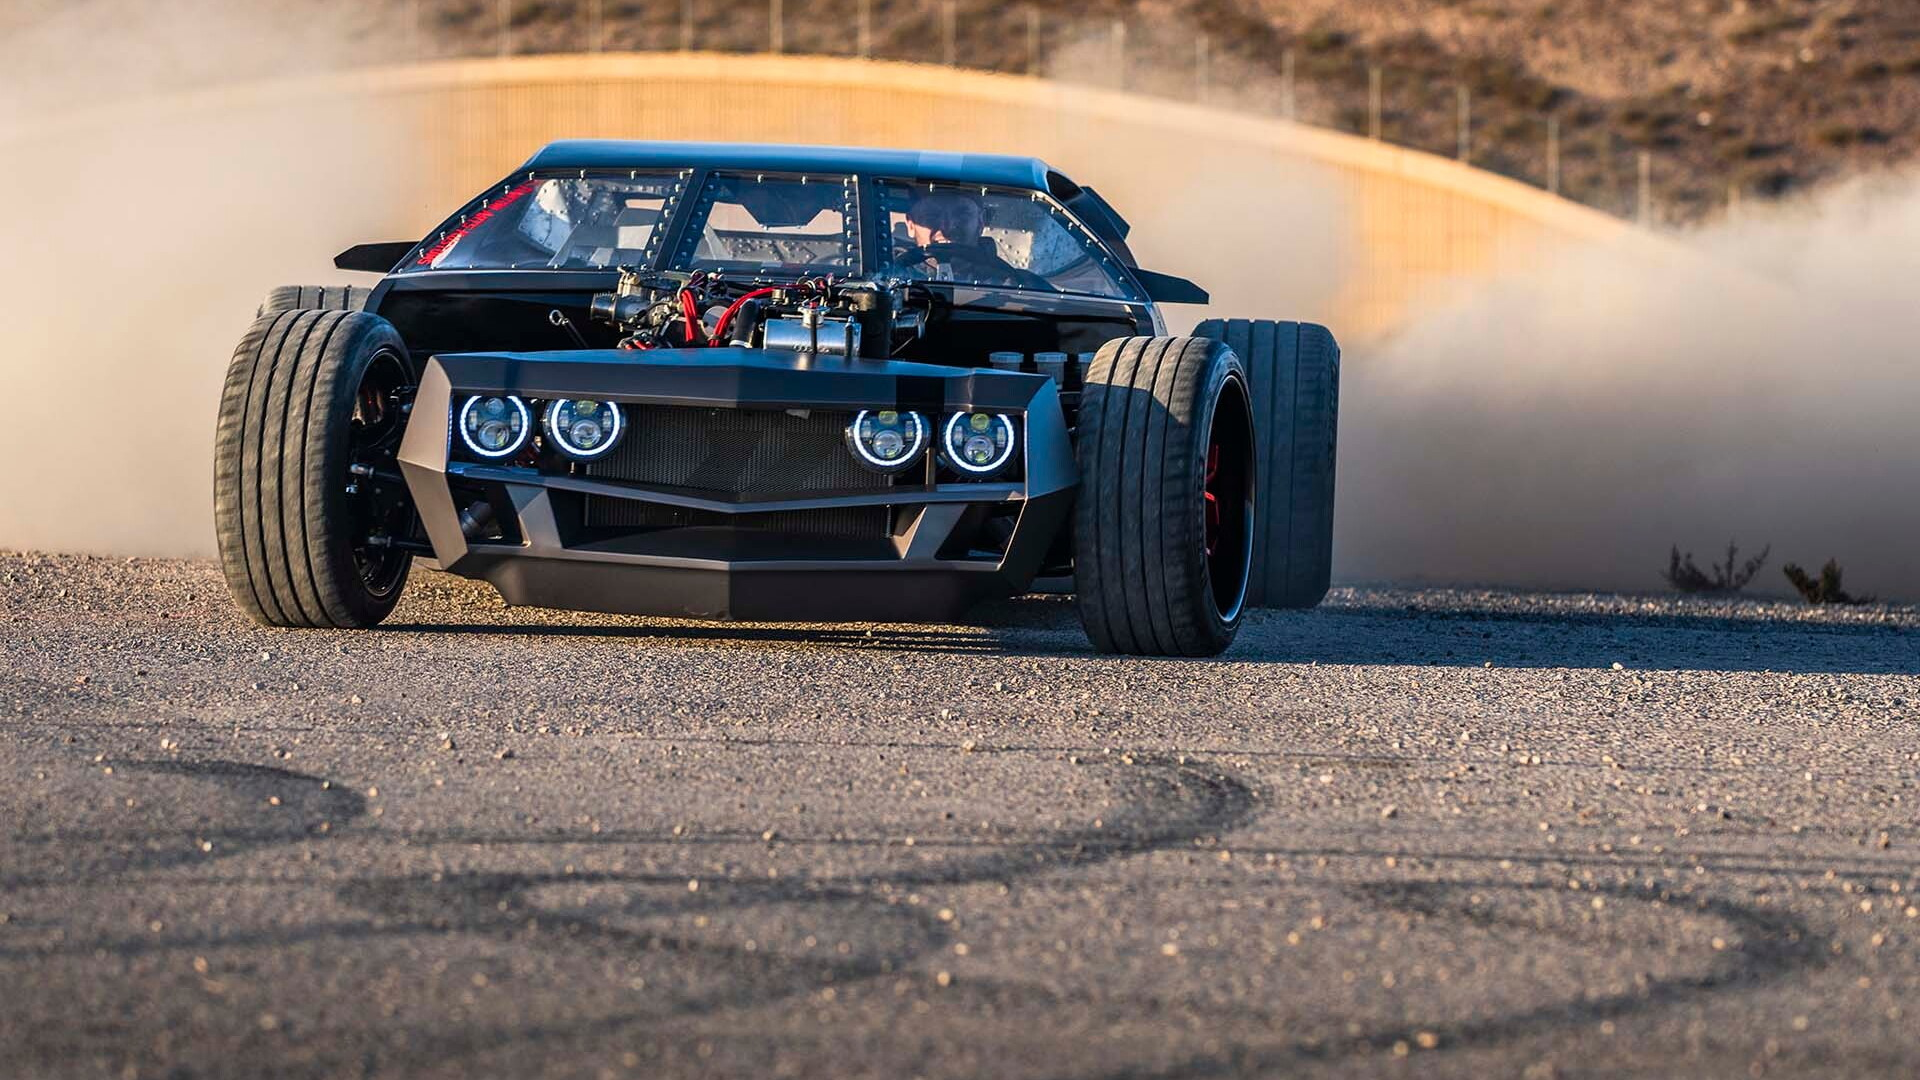 1968 Lamborghini Espada hot rod, photos by Alex Bellus Photography